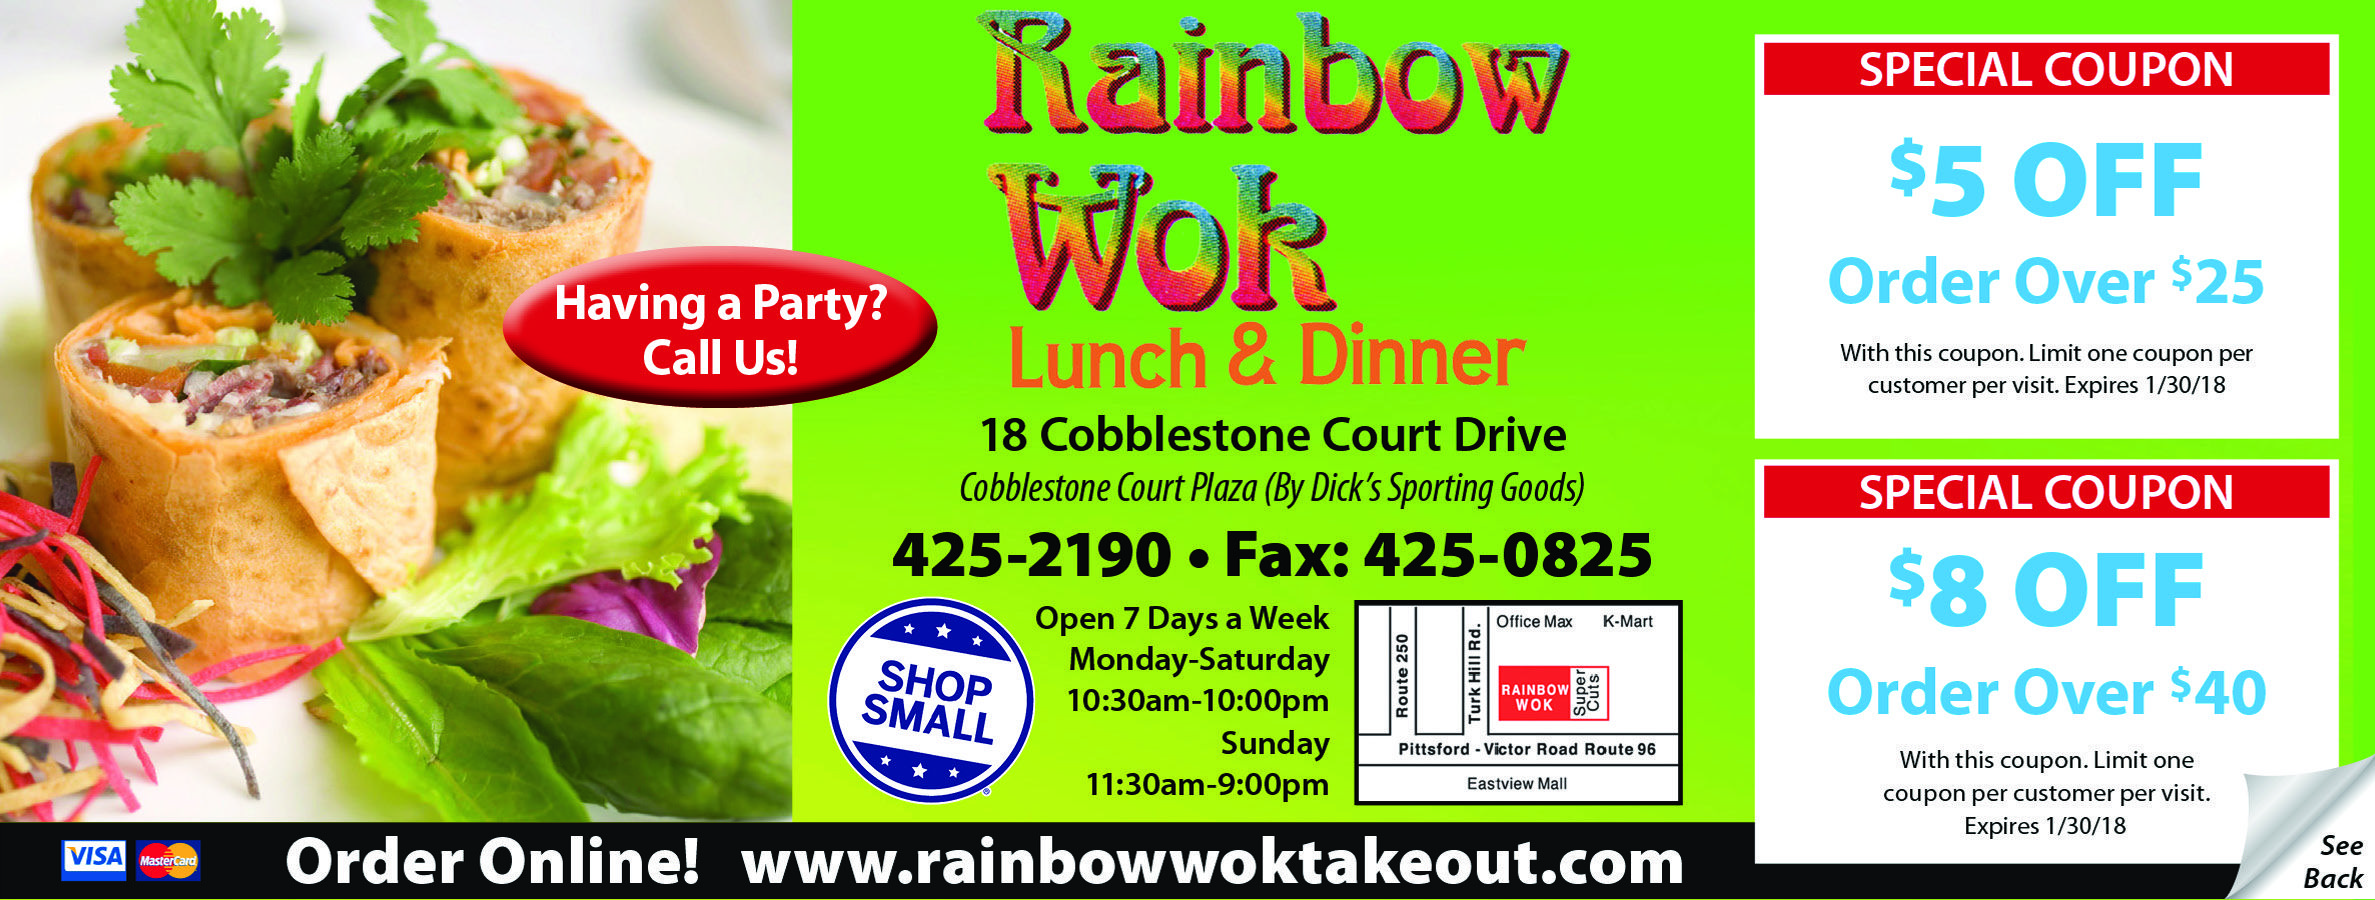 Rainbow Wok Lunch Dinner Restaurant Bar Coupons Of The Month